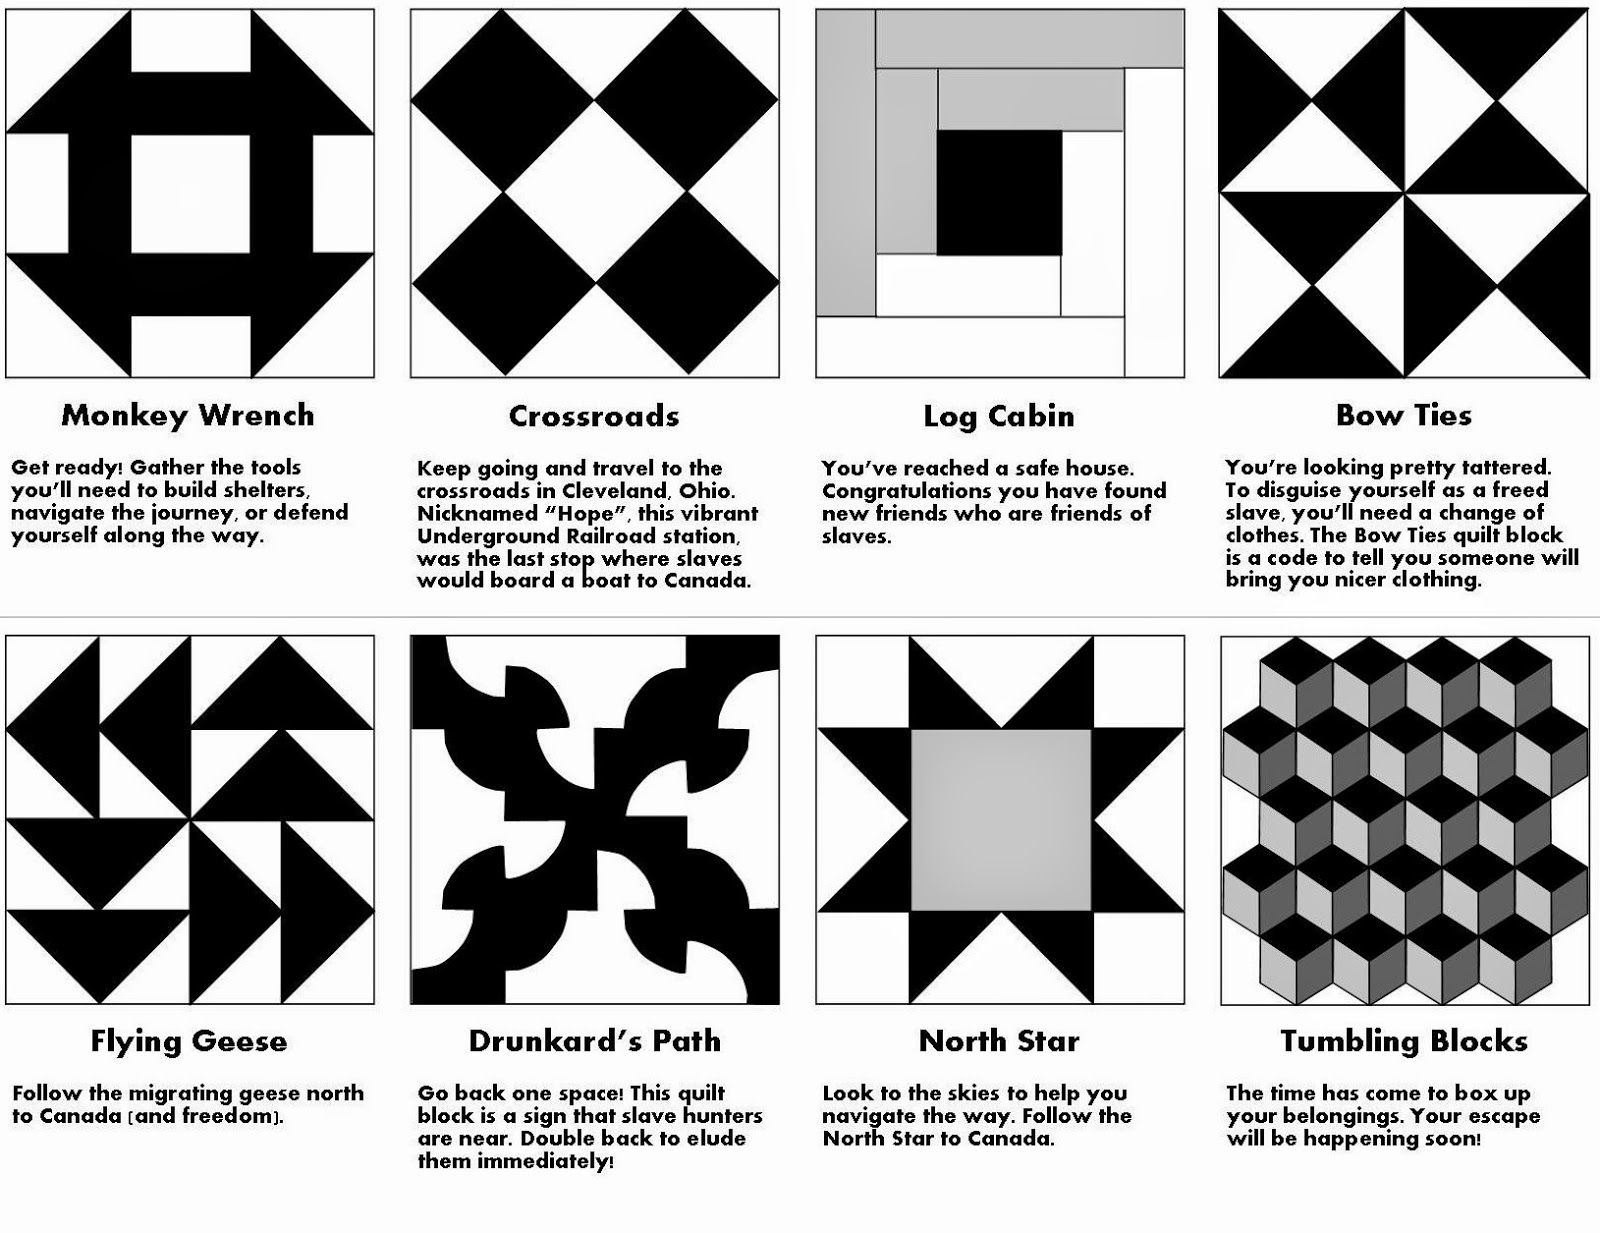 Quilt Patterns Slaves Used : Relentlessly Fun, Deceptively Educational: Printable Underground Railroad Quilt Code Game